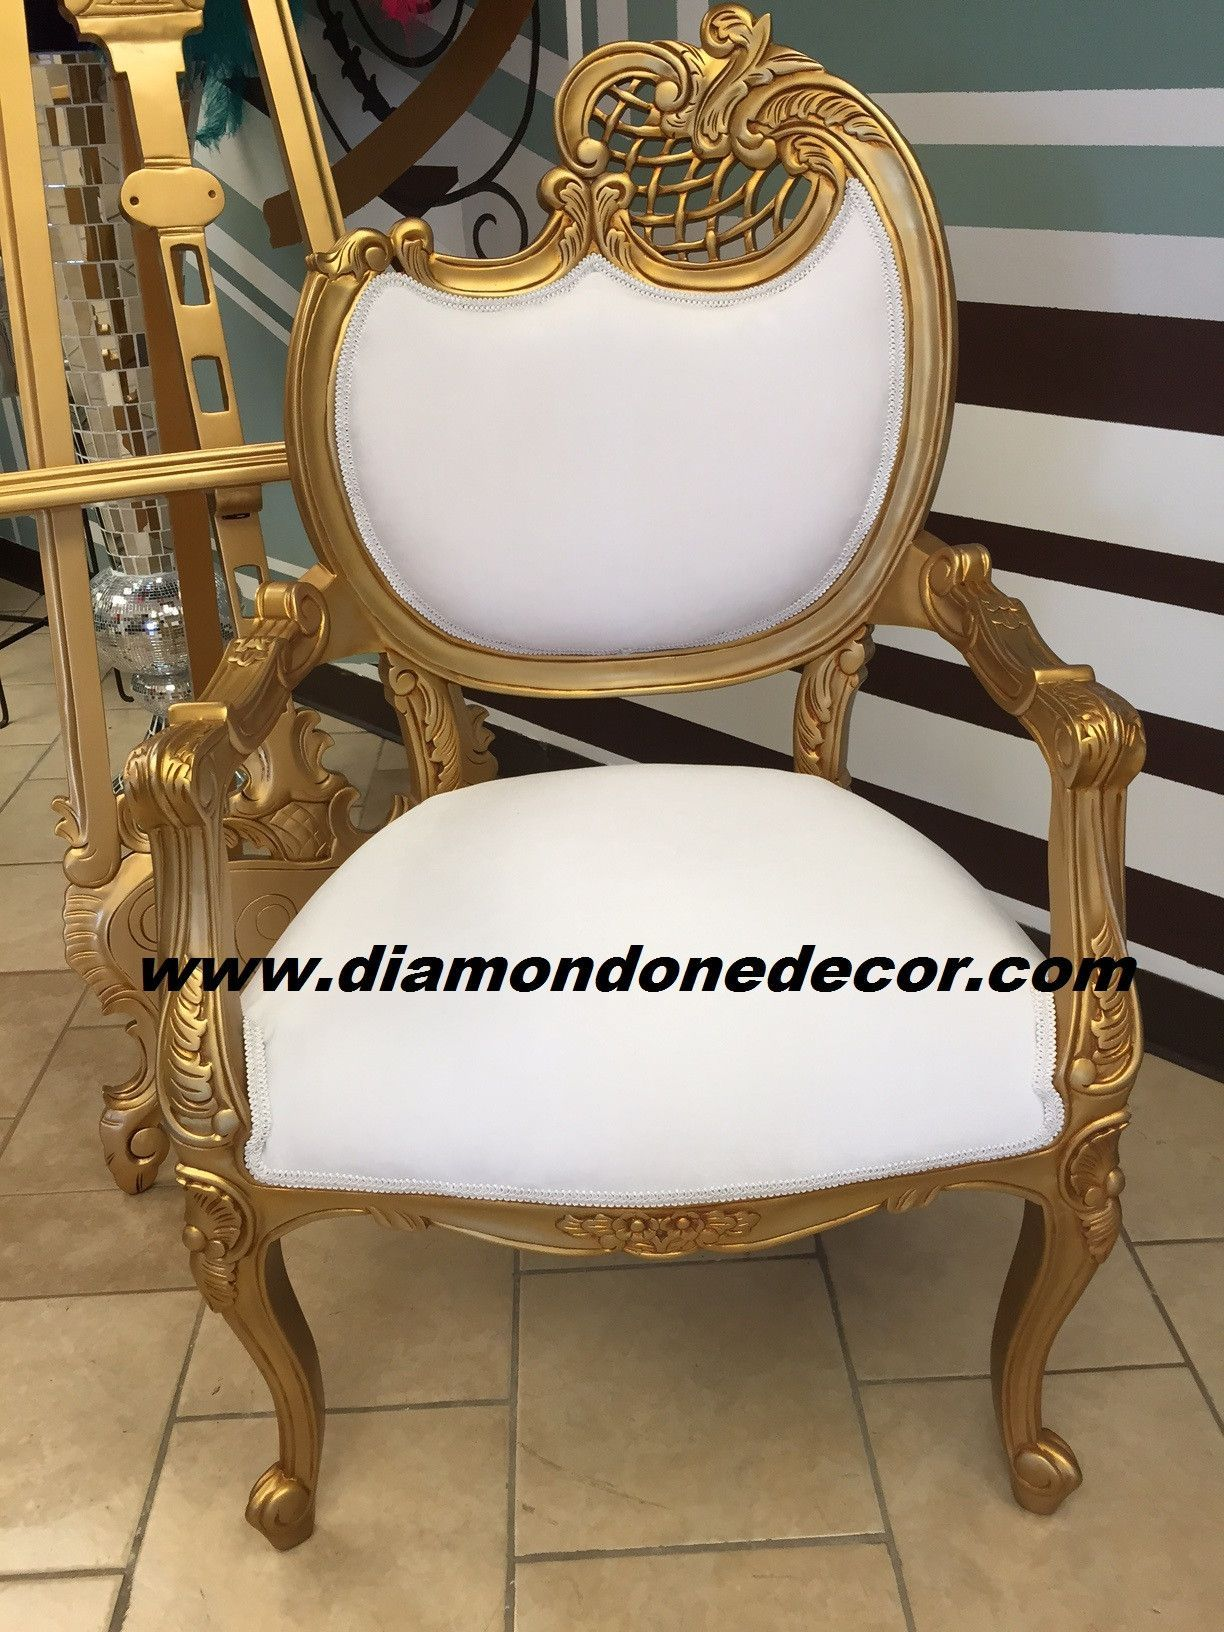 Gisele Fabulous Baroque Louis Xvi White Velvet French Reproduction Rococo Chairs In